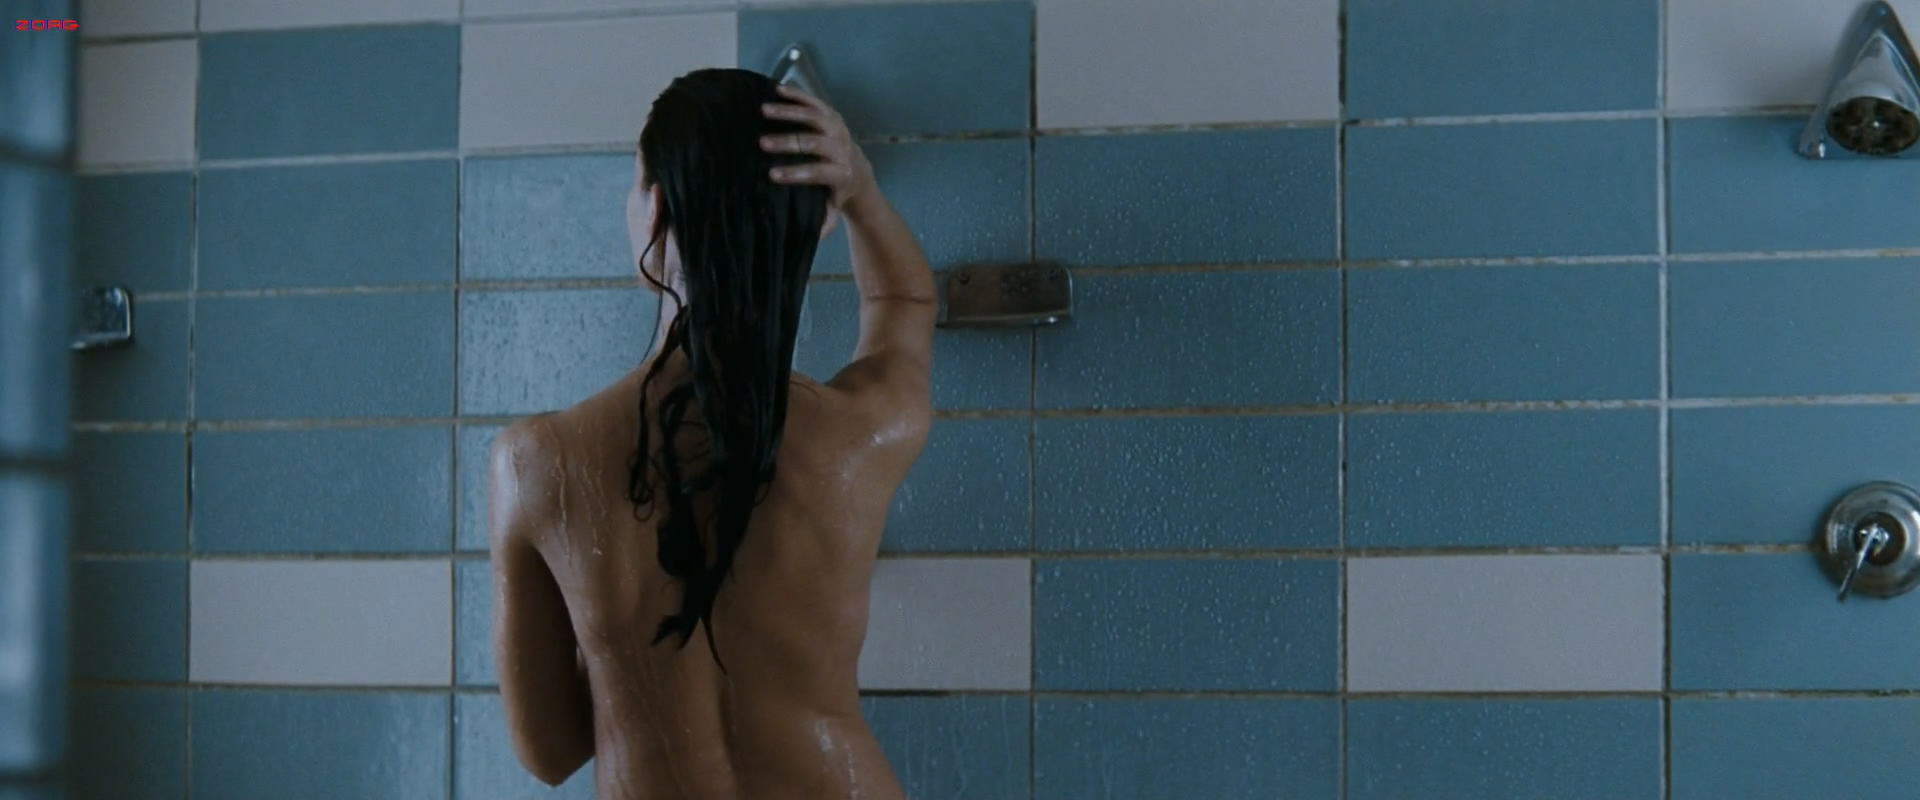 Odette Yustman Annable Not Nude But Sexy - Unborn 2009 -3969